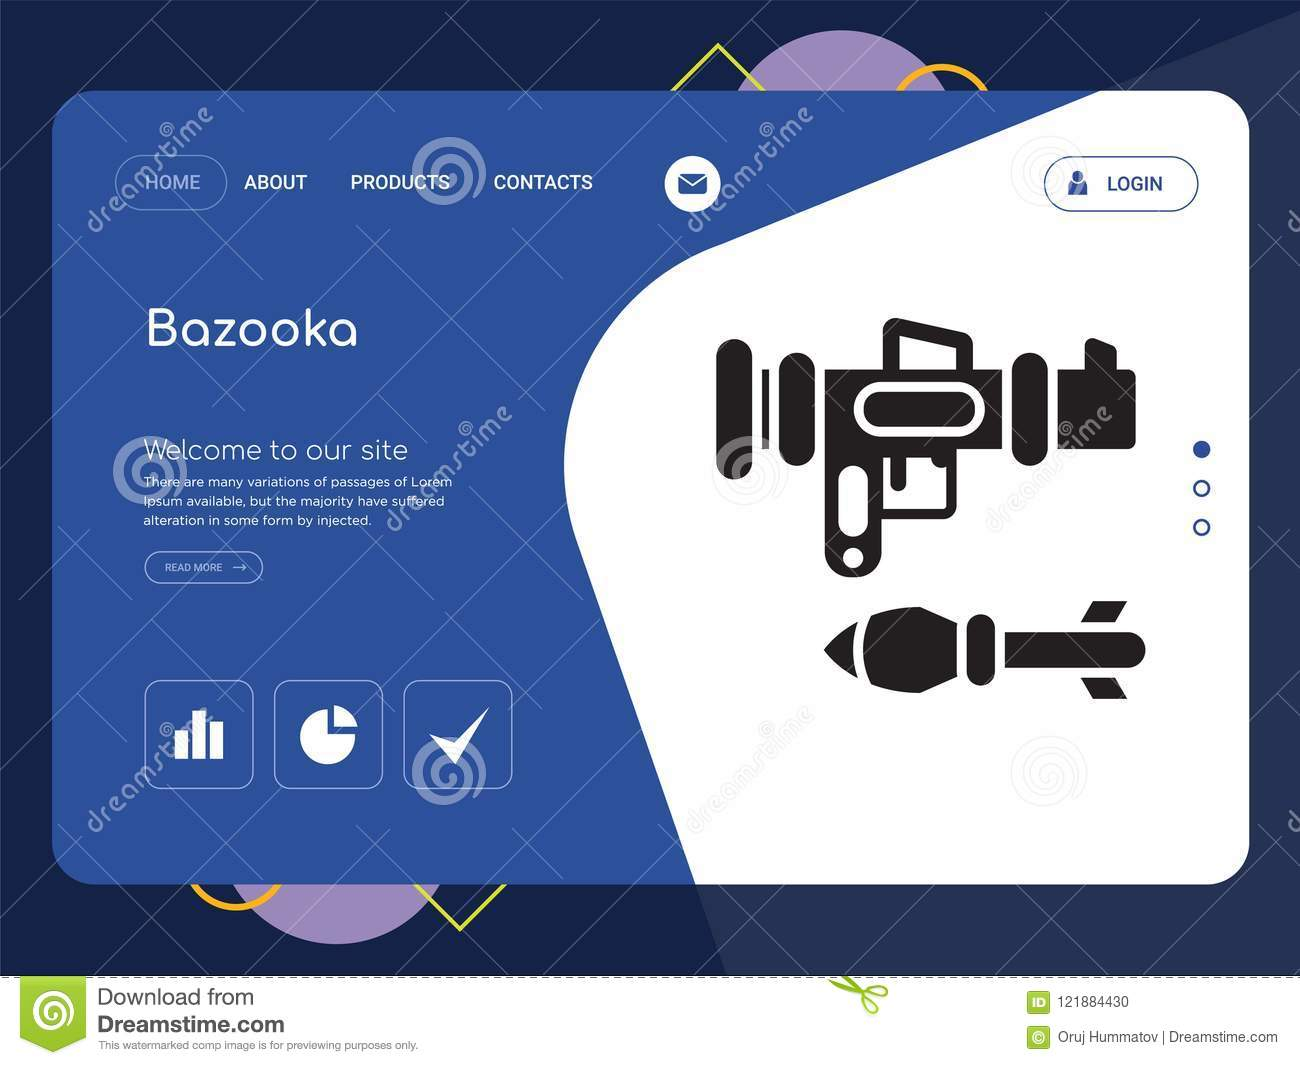 What is a bazooka Photo, description, design of weapons 93